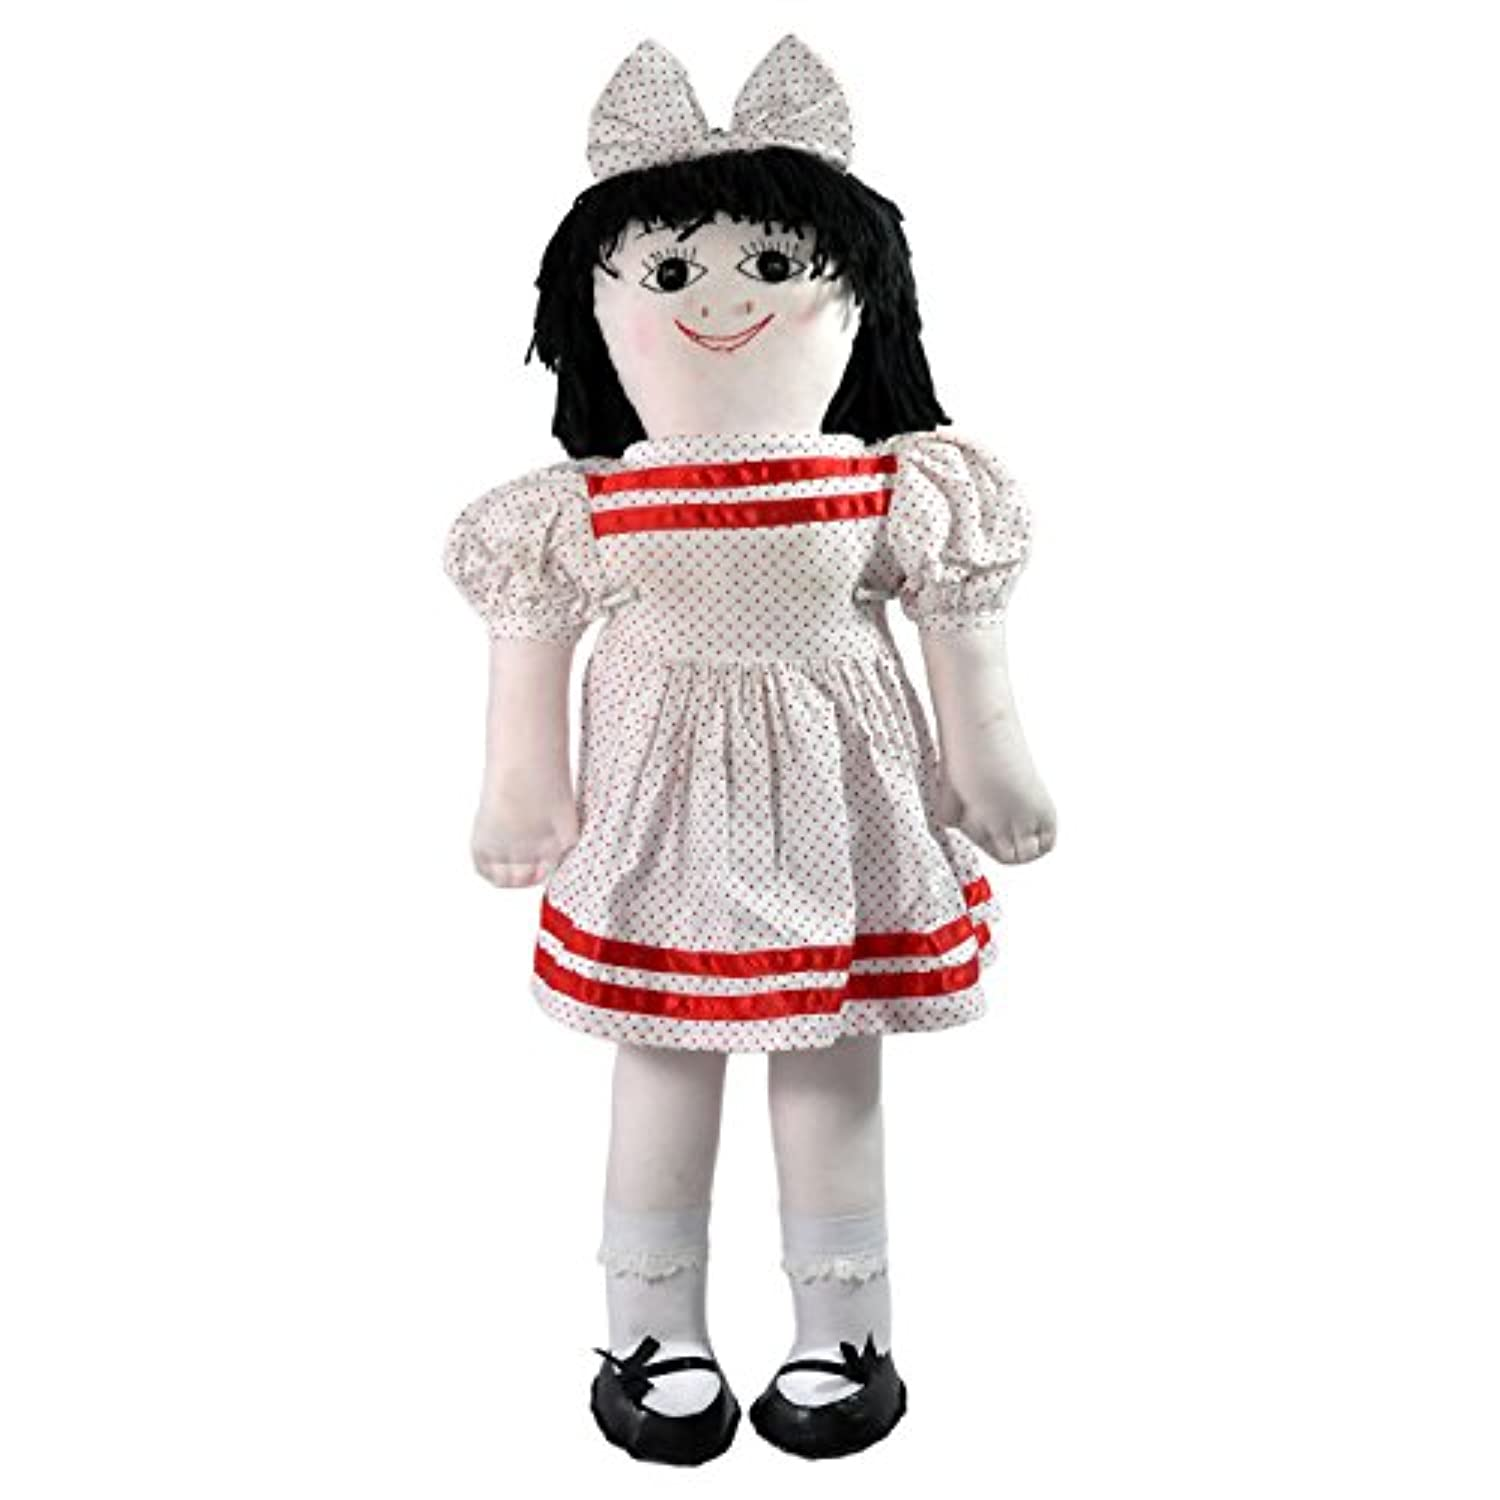 Nation of Dolls American Doll Polly White